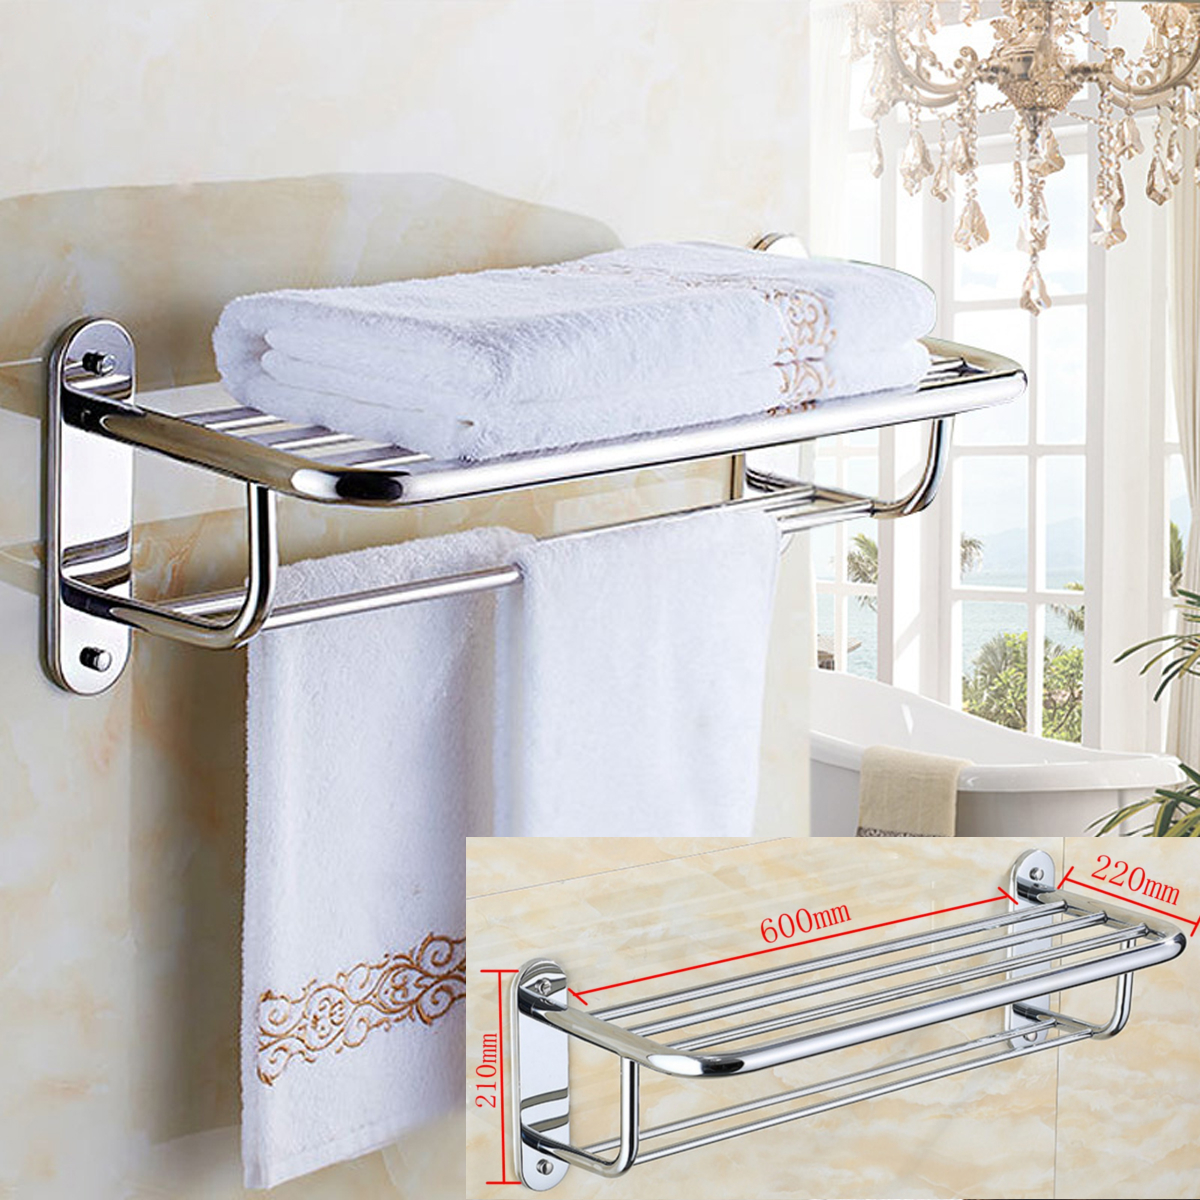 Chrome Stylish Bathroom Wall Mounted Towel Rail Holder Shelf Storage Rack